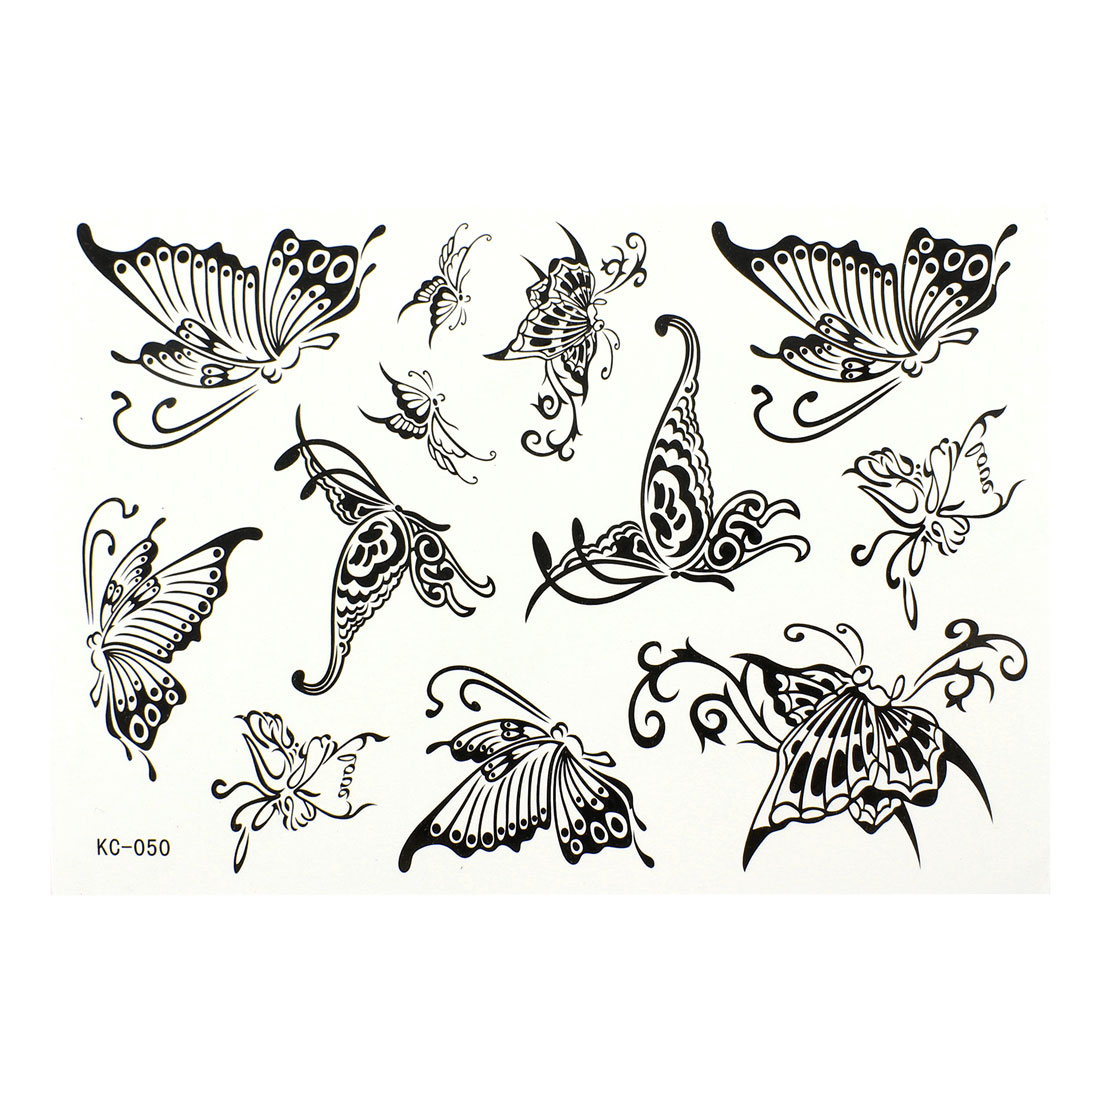 Black Butterfly Printed Temporary Transfer Tattoos Sticker Beauty Tool